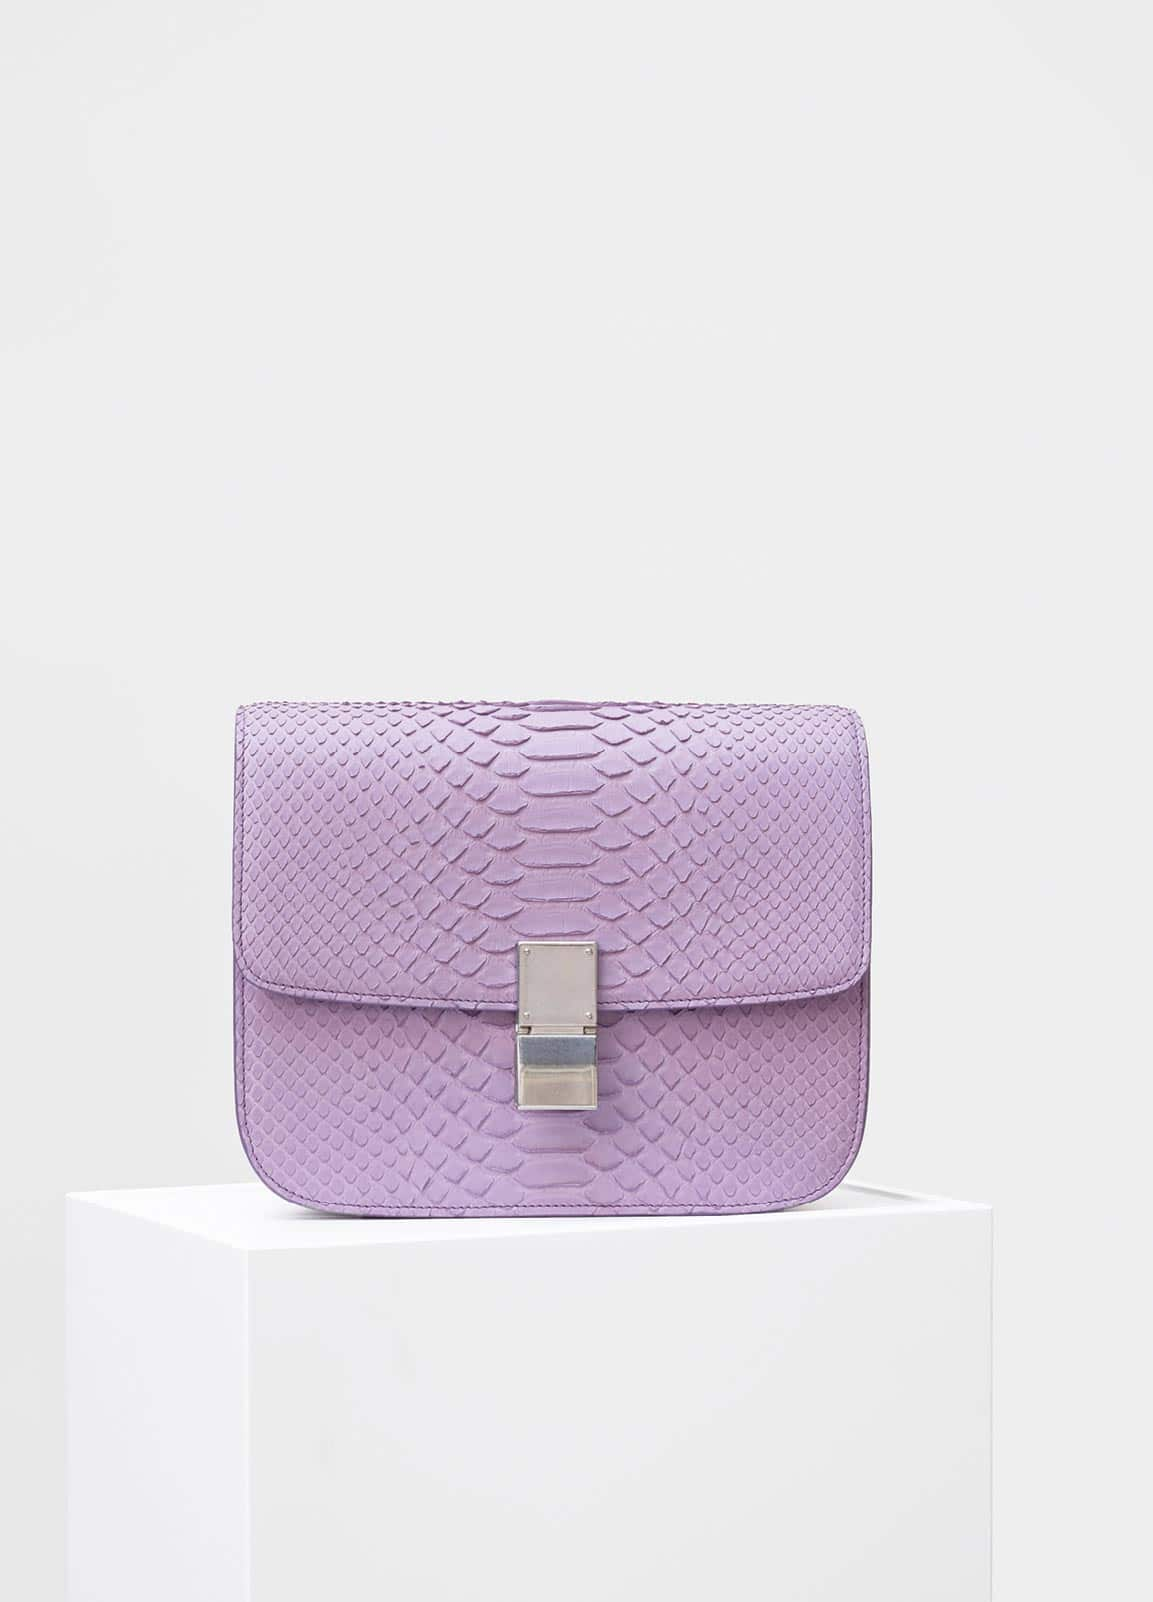 Celine Winter 2016 Bag Collection featuring Pastels   Spotted Fashion 05c718e321